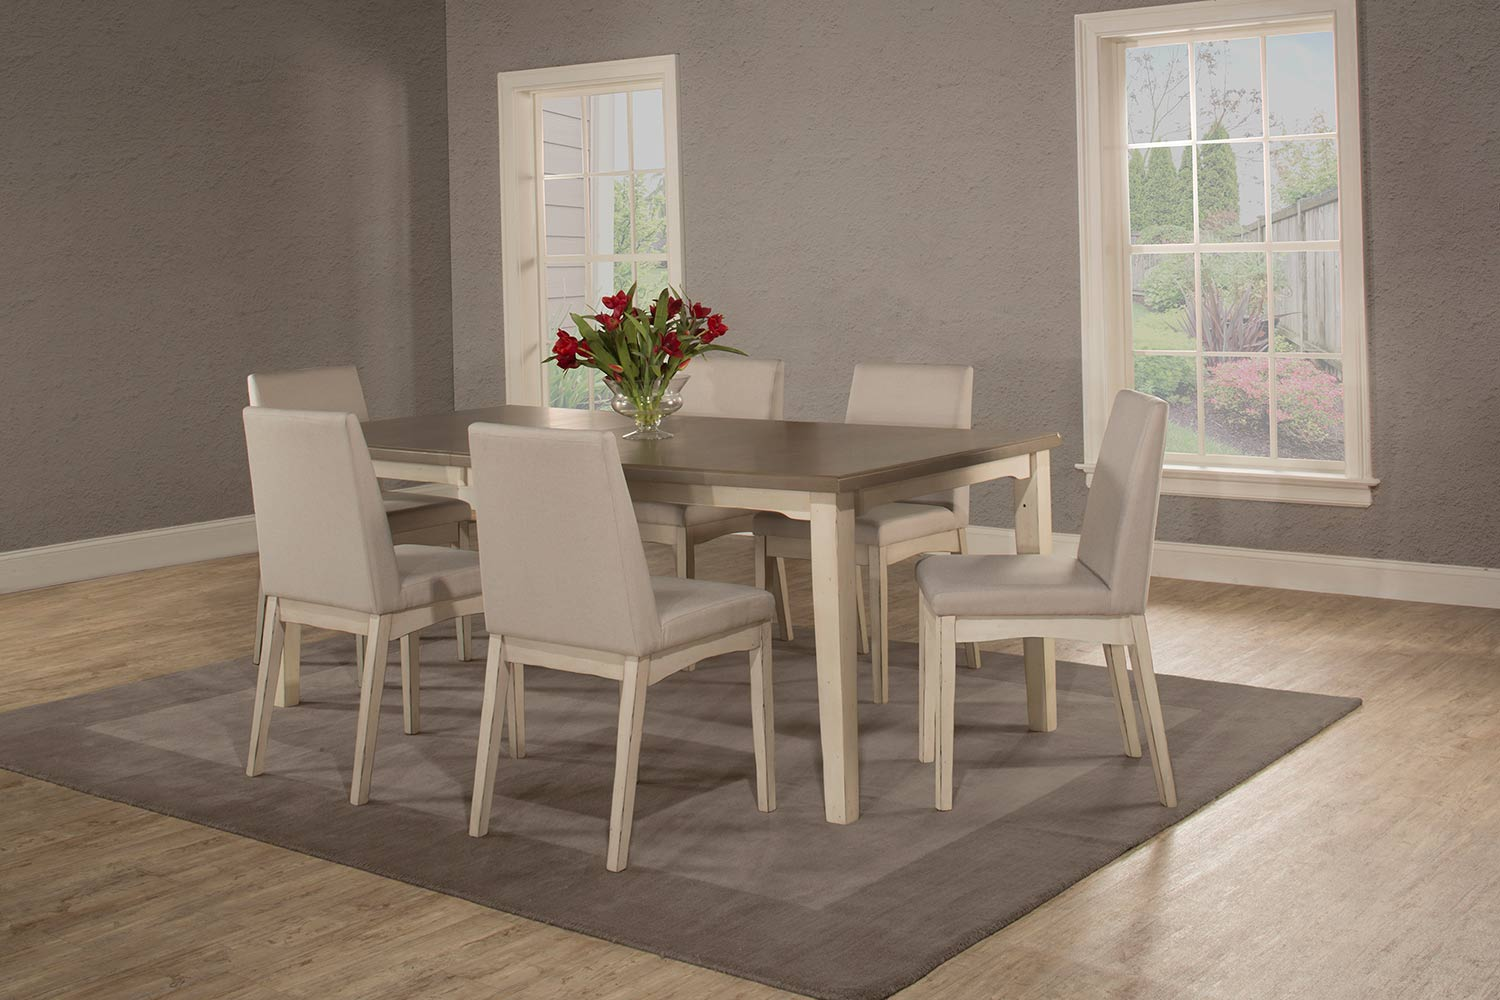 Hillsdale Clarion 7-Piece Rectangle Dining Set with Upholsted Chairs - Sea White - Fog Fabric